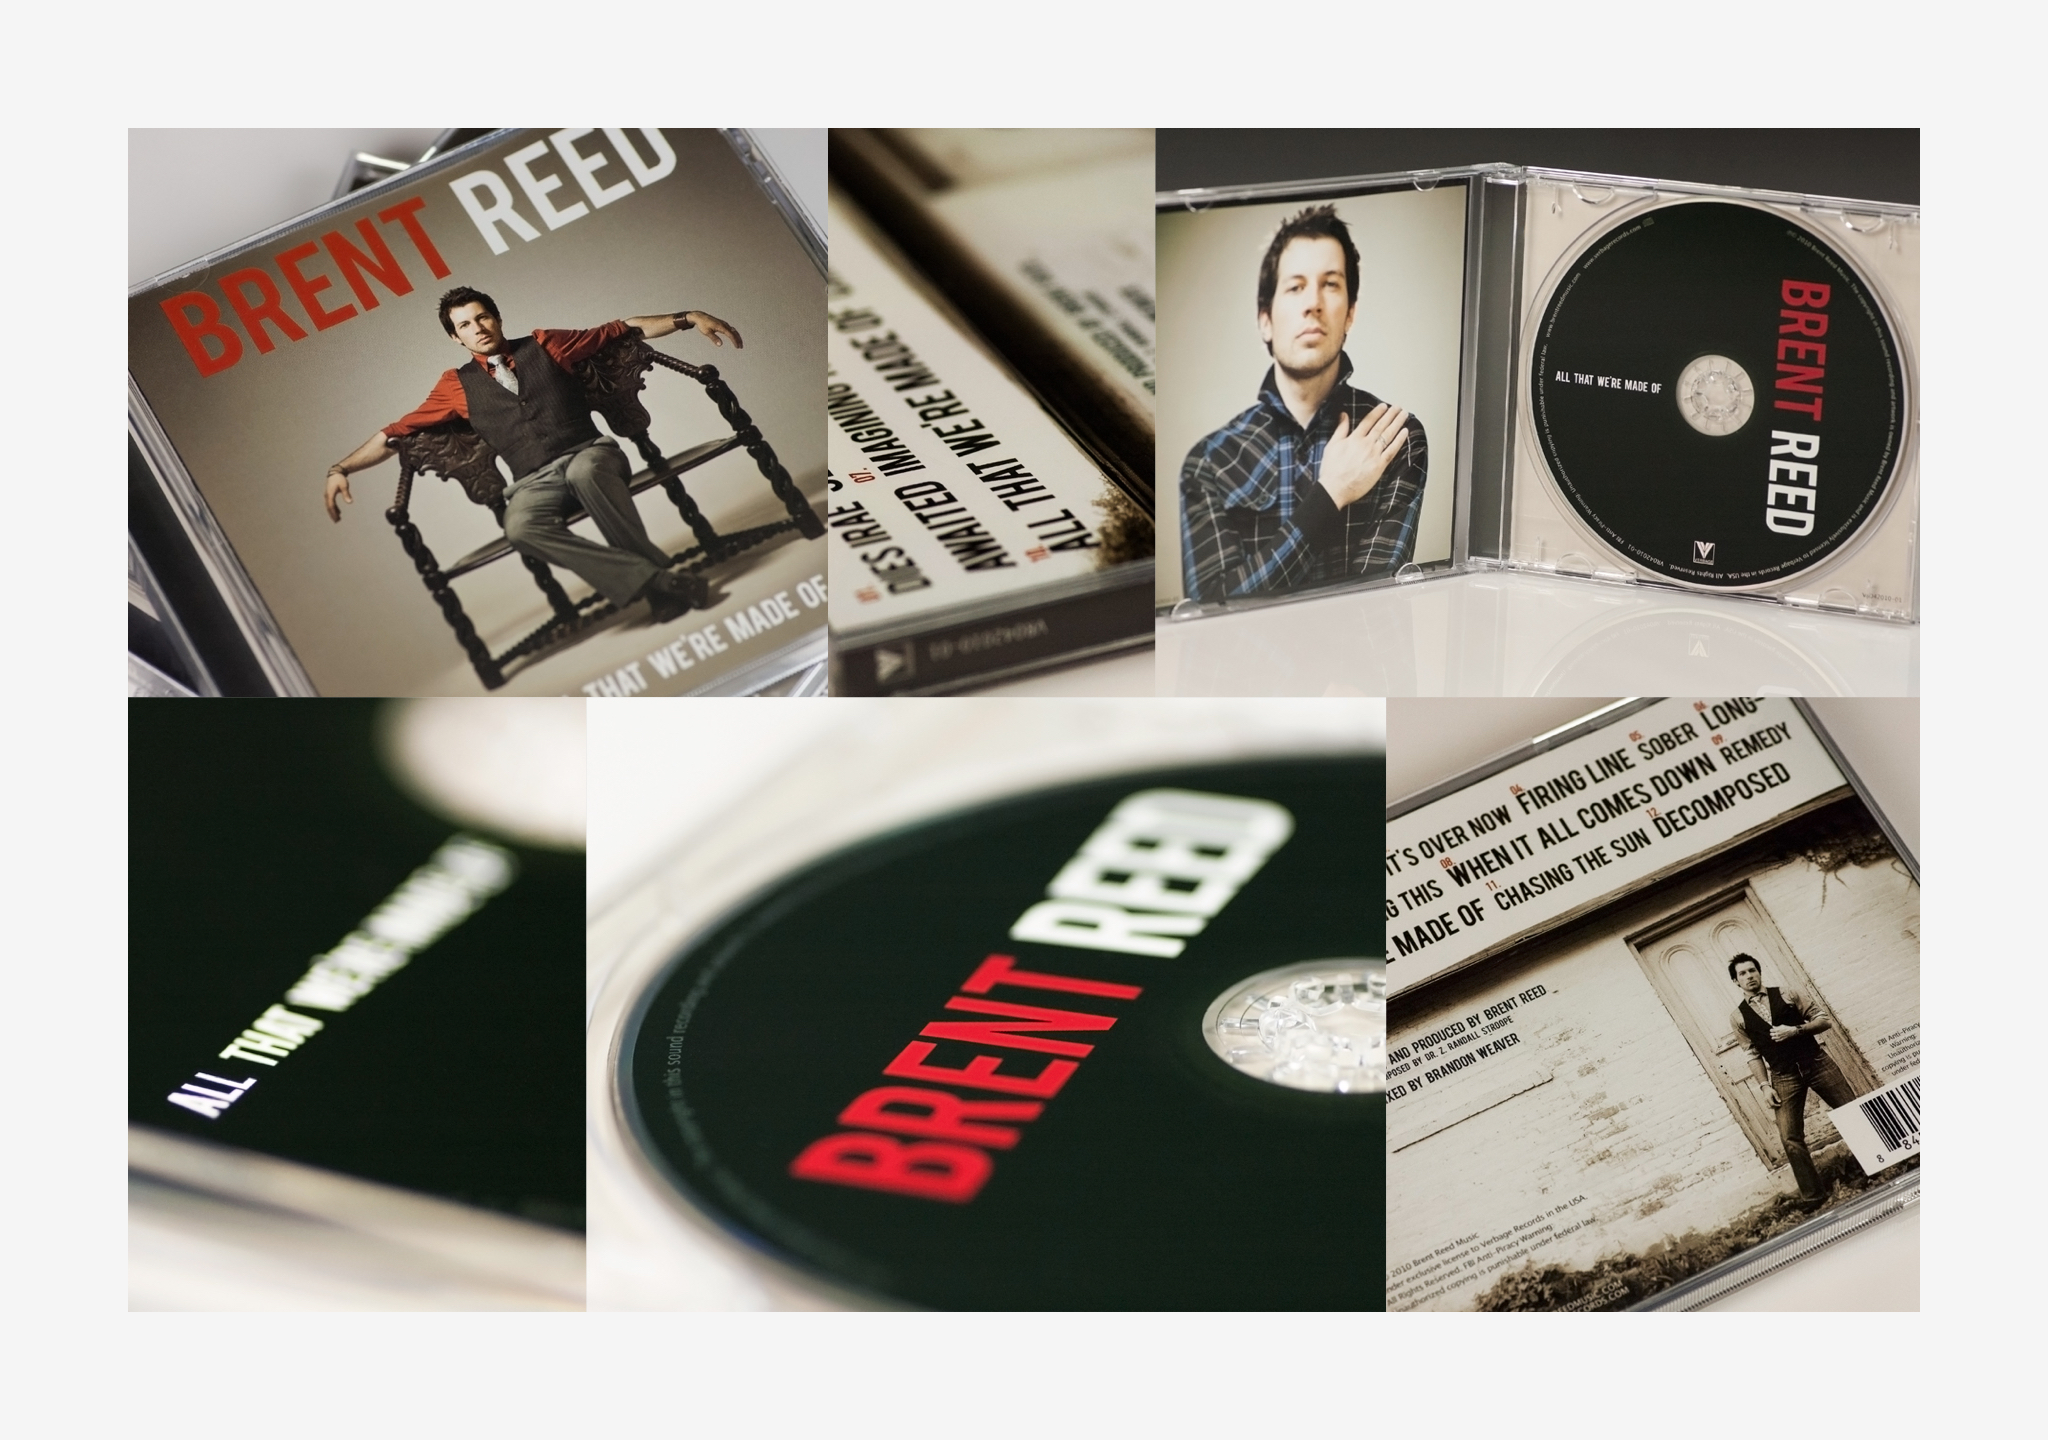 Featured-Brent-Reed-CD-Packaging